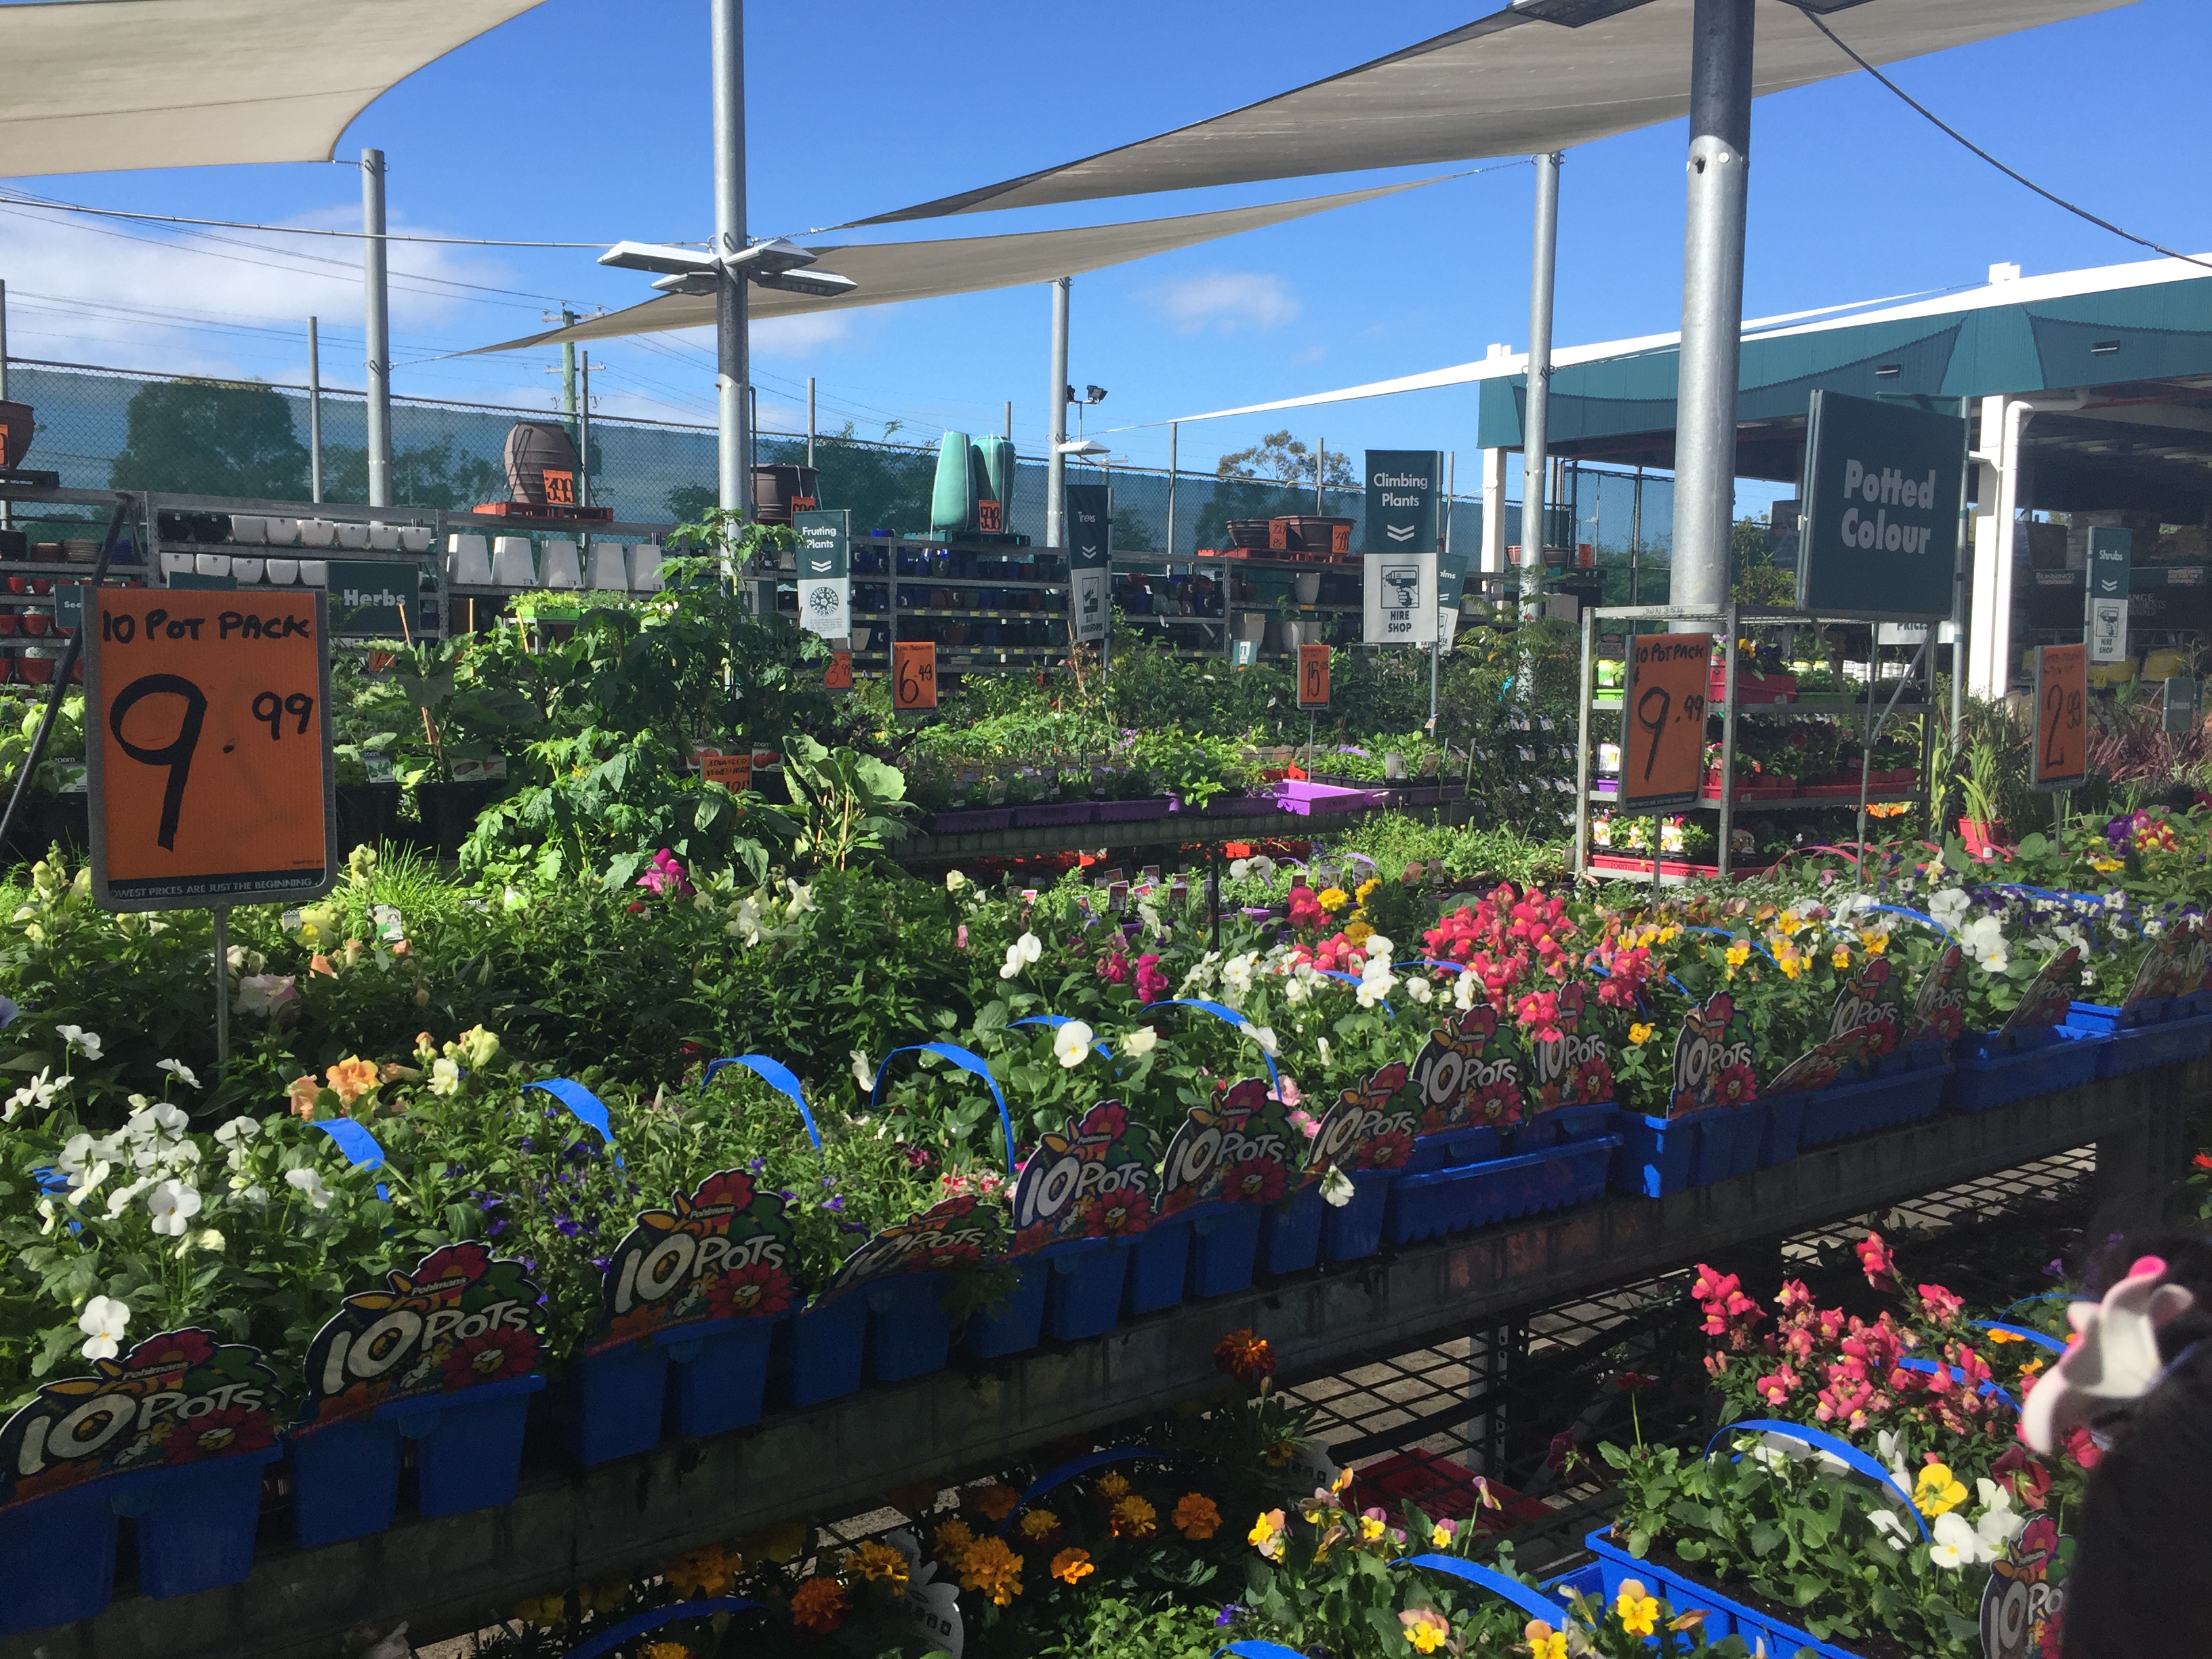 Need flowers? Yes, you guessed it, you can get those at Bunnings Morayfield too! © GreenSocks